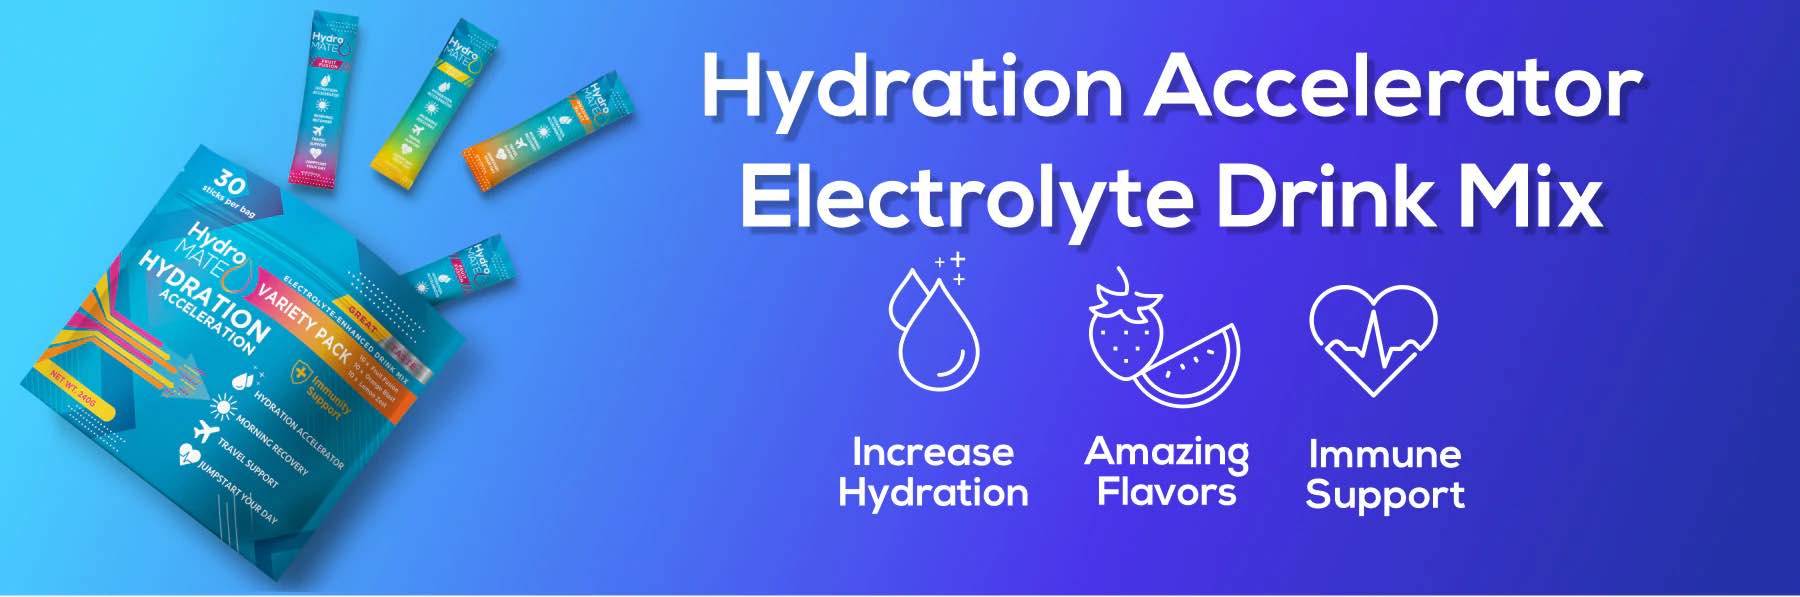 Hydration Accelerator Electrolyte Drink Mix